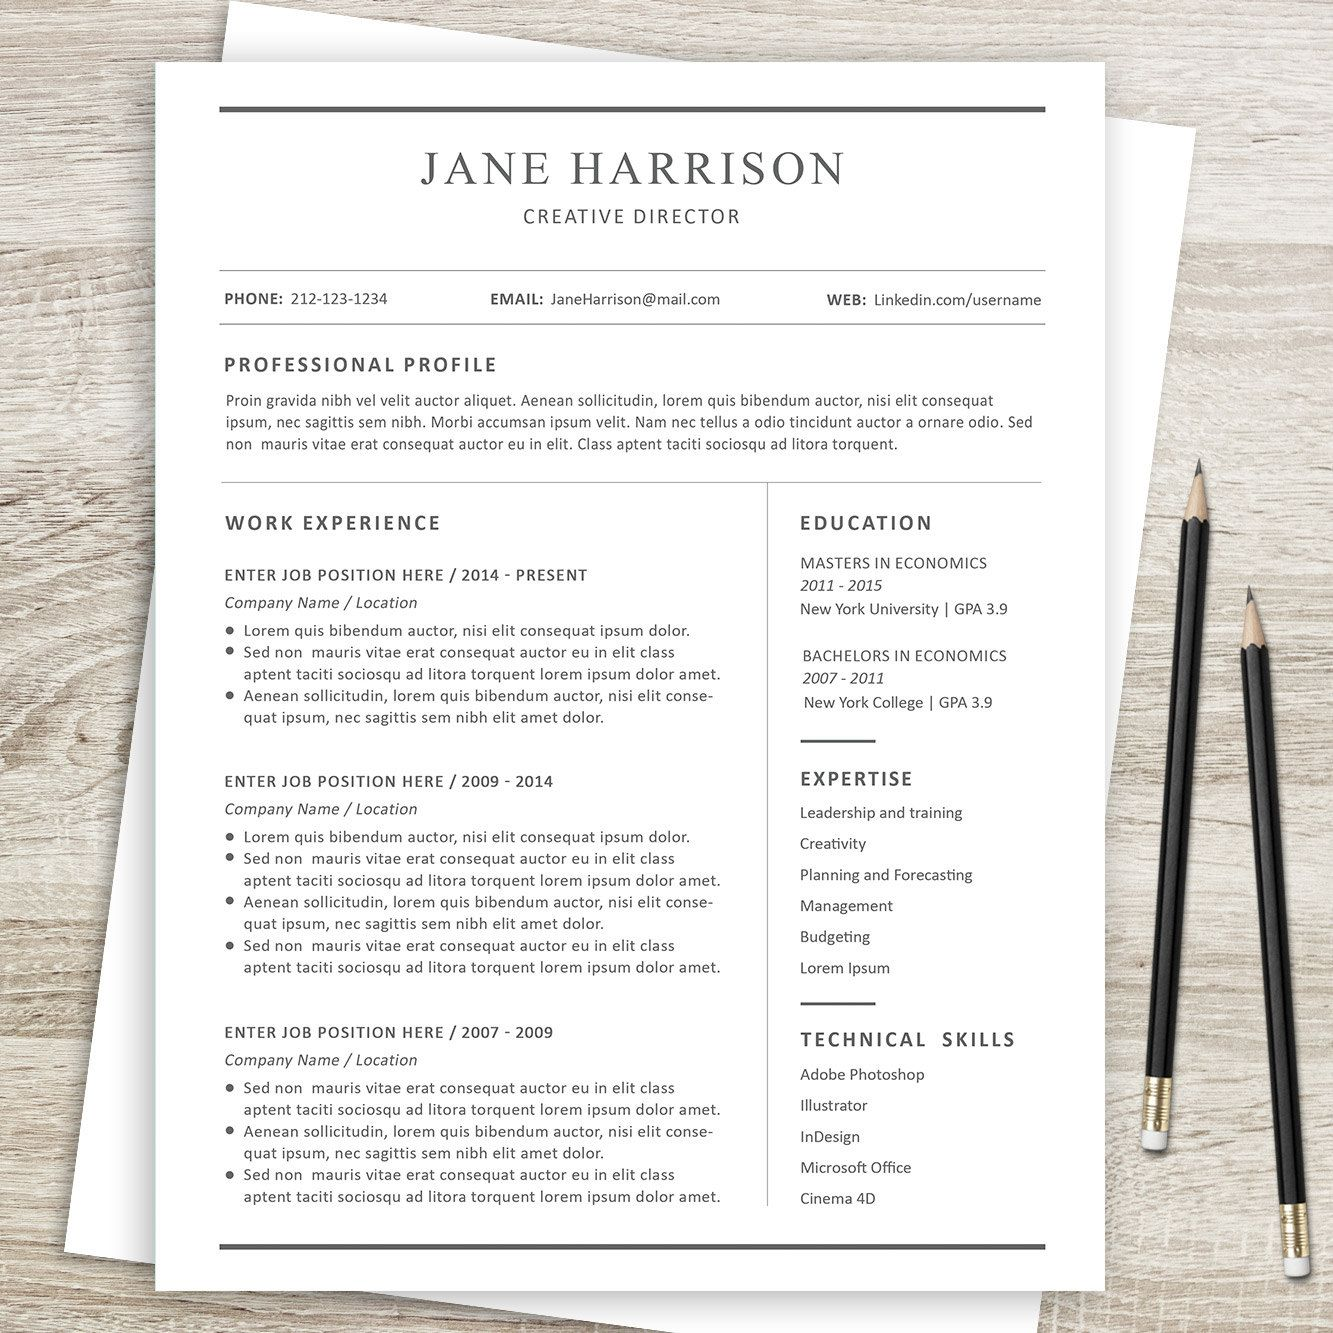 Word Resume Template 2007 Ms Word Resume Template & Cover Letteralso Available In Photoshop .